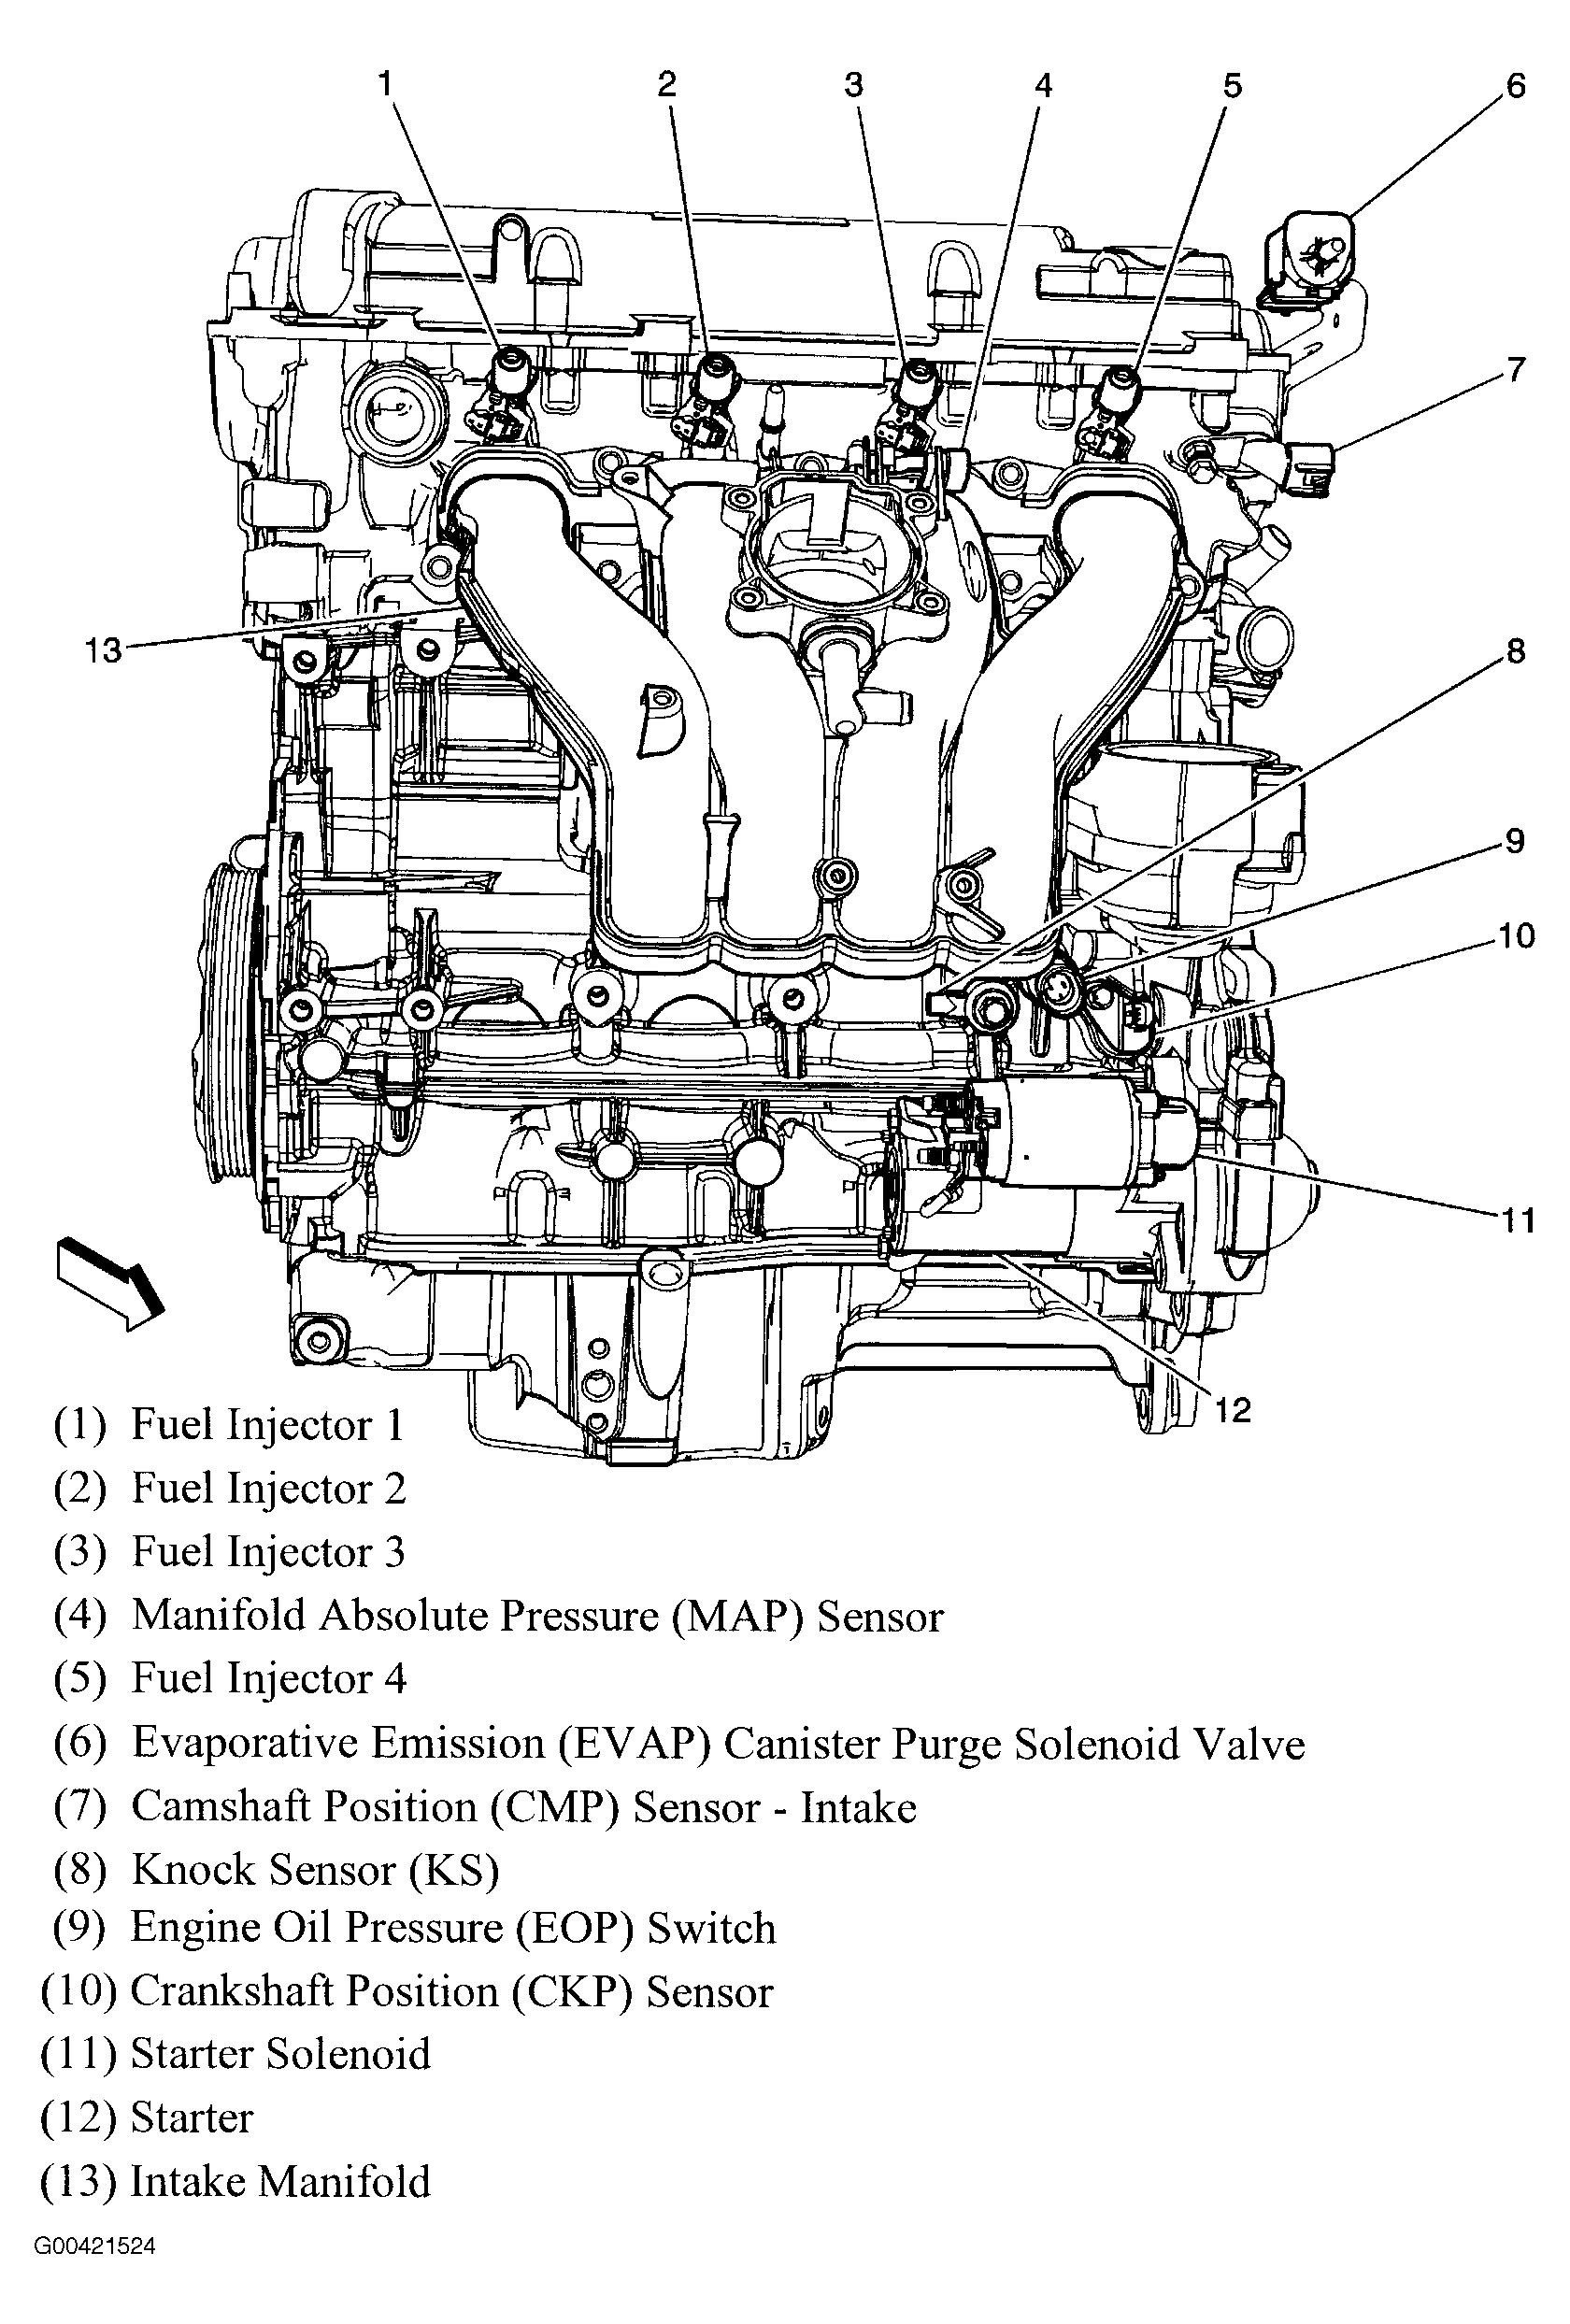 2005 Chevy Trailblazer Engine Diagram 4 2 Litre Chevy Engine Diagram Simple Guide About Wiring